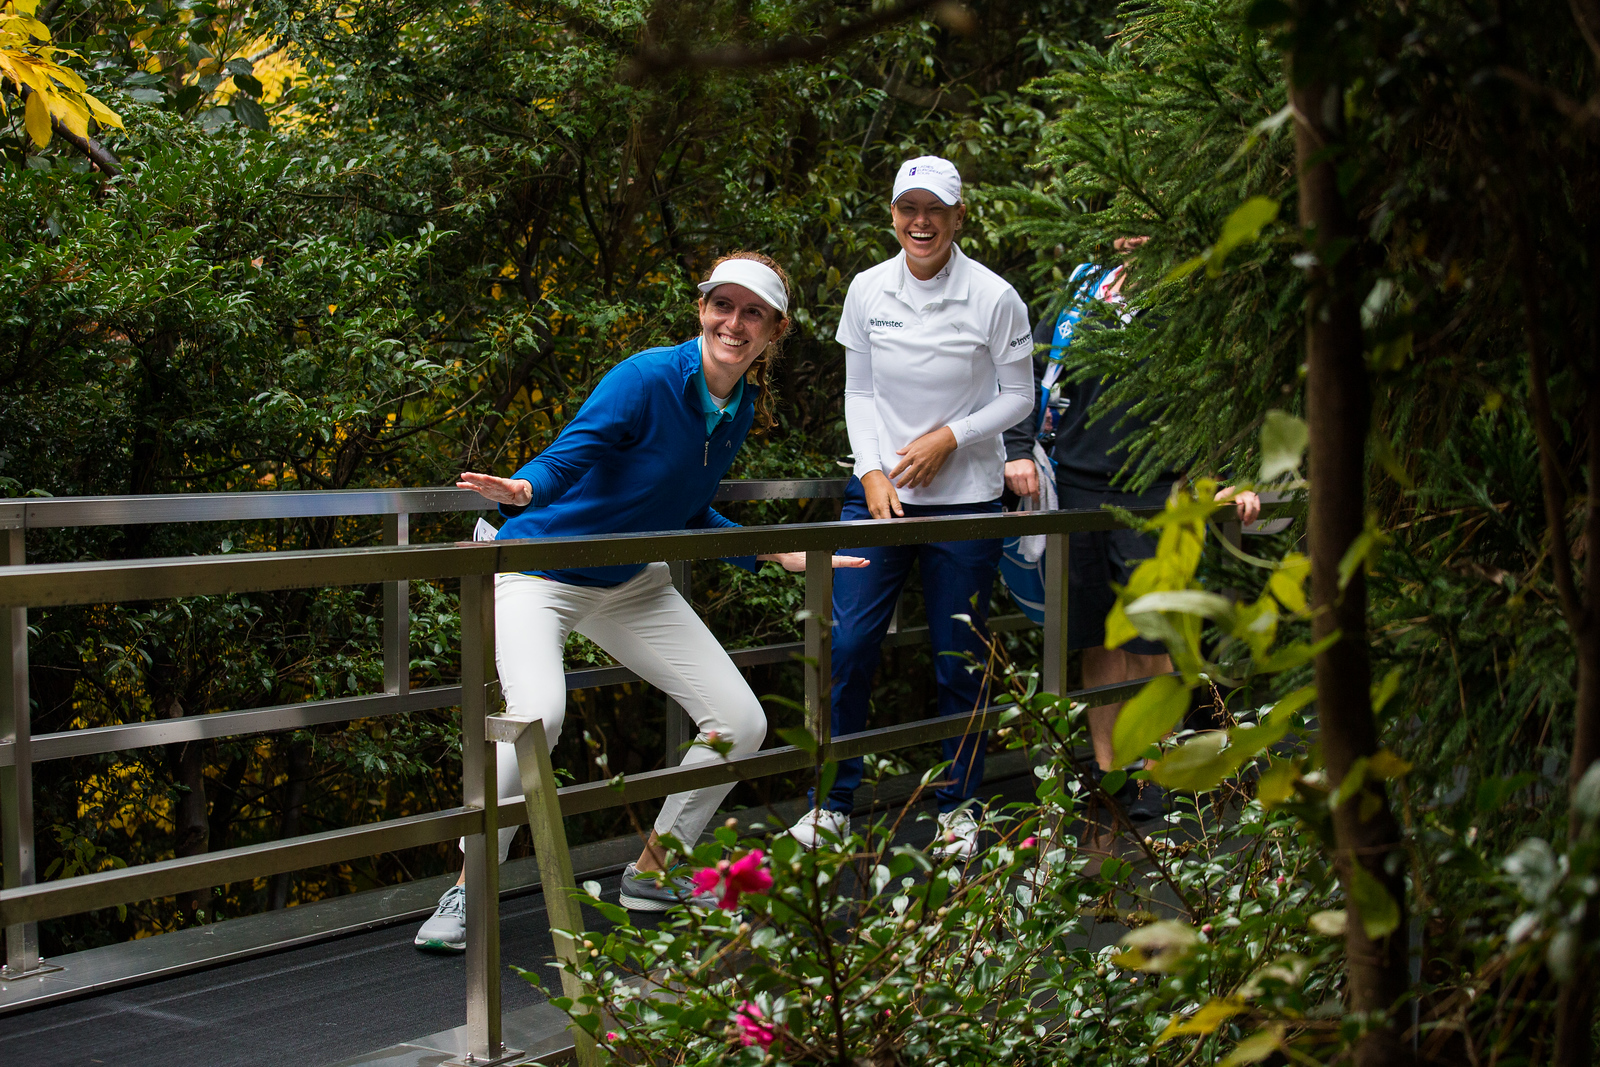 Florentyna Parker of England strikes a pose on the travellator by the 13th green during a practice round